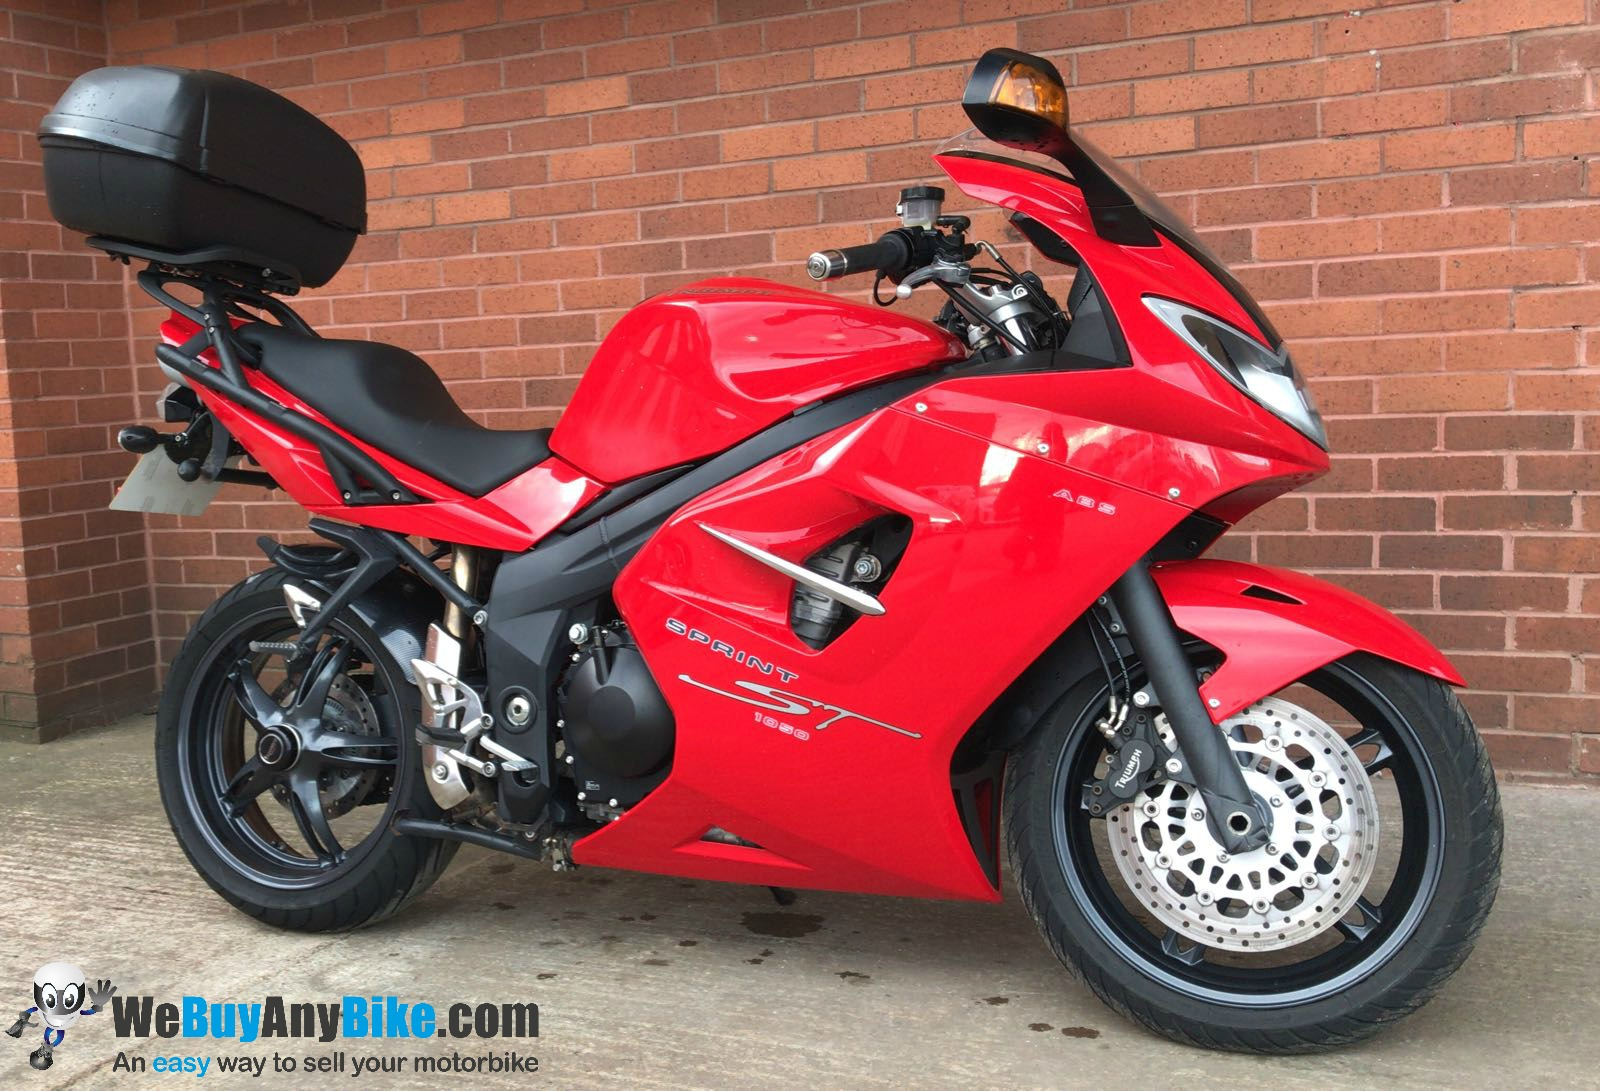 webuyanybike - bike trader - sell your bike online - value my motorbike - motorcycle trader - buy my bike